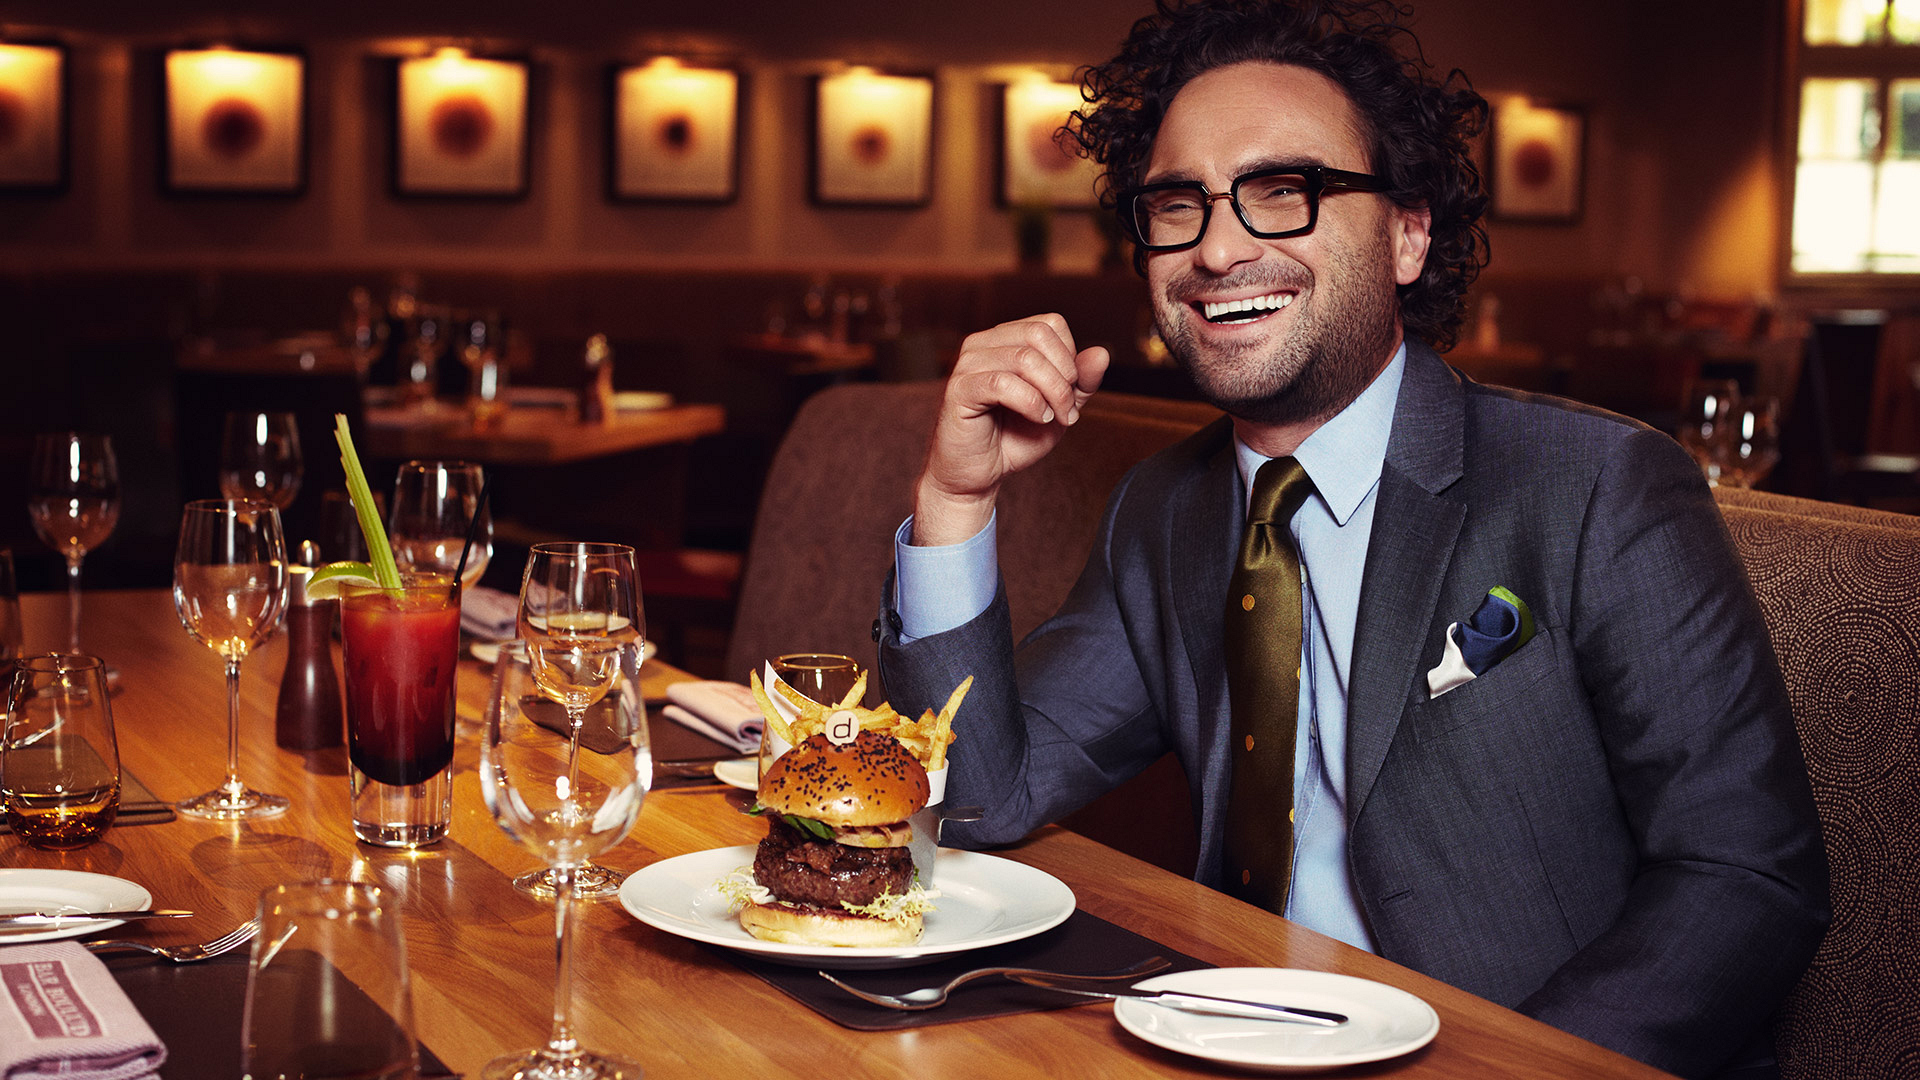 Take a cue from The Big Bang Theory star Johnny Galecki. Don't worry, be happy!